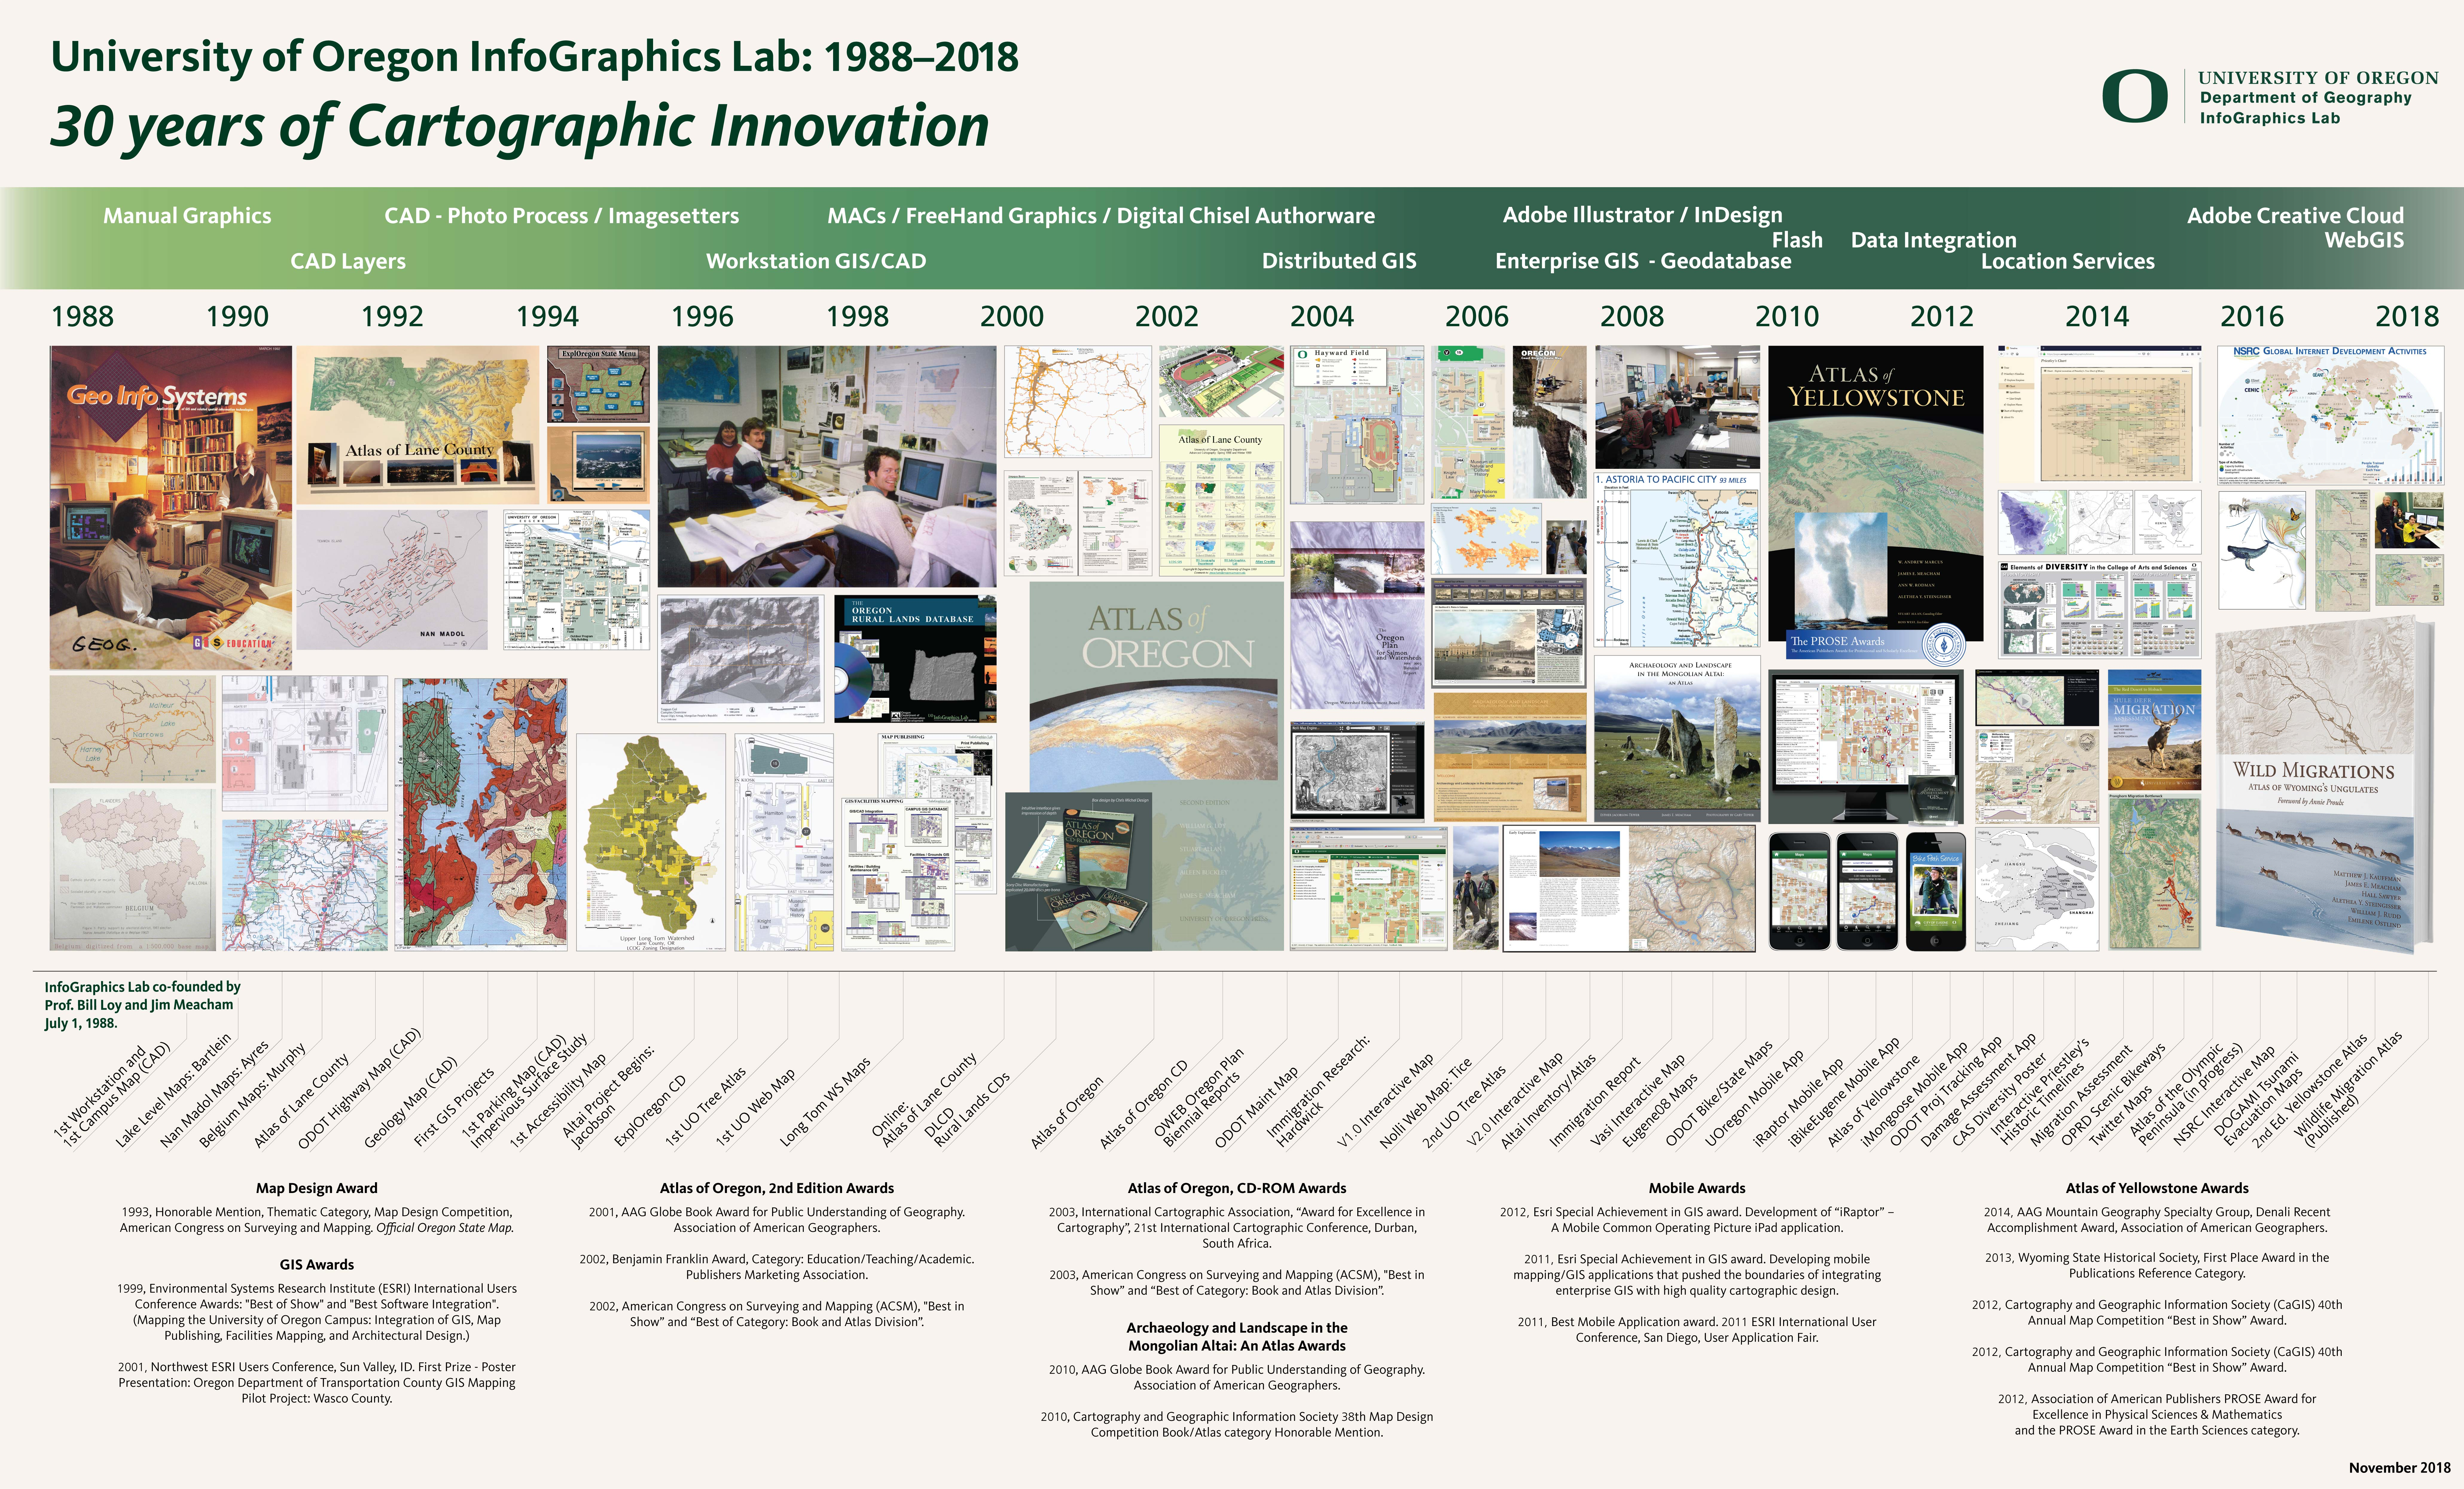 Timeline of InfoGraphics Projects